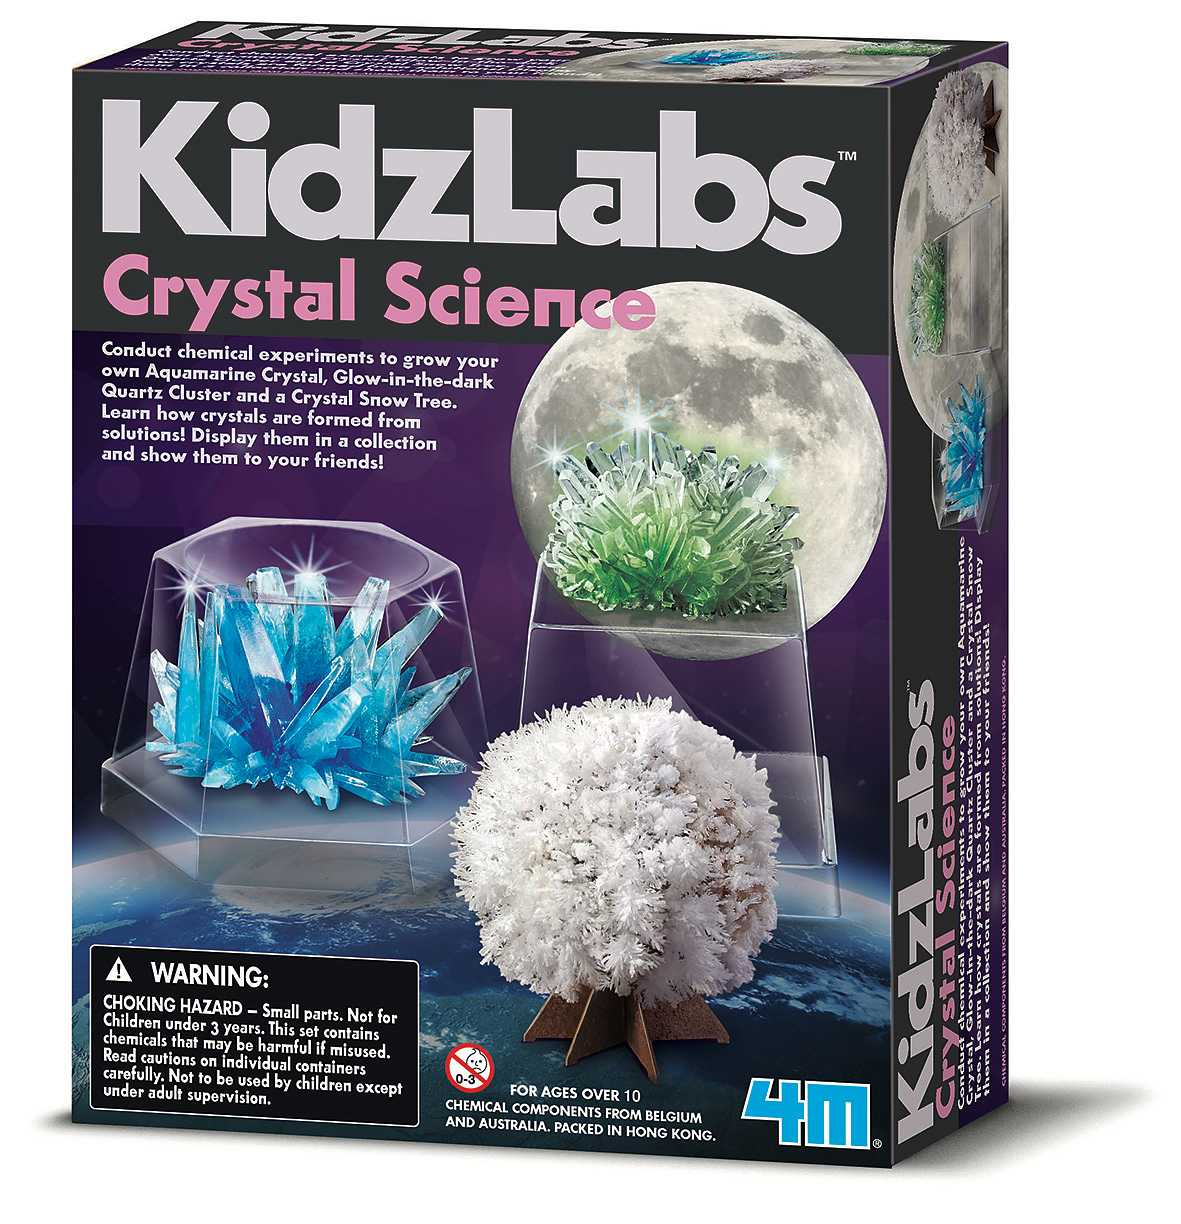 Crystal Science KidzLabs 4M